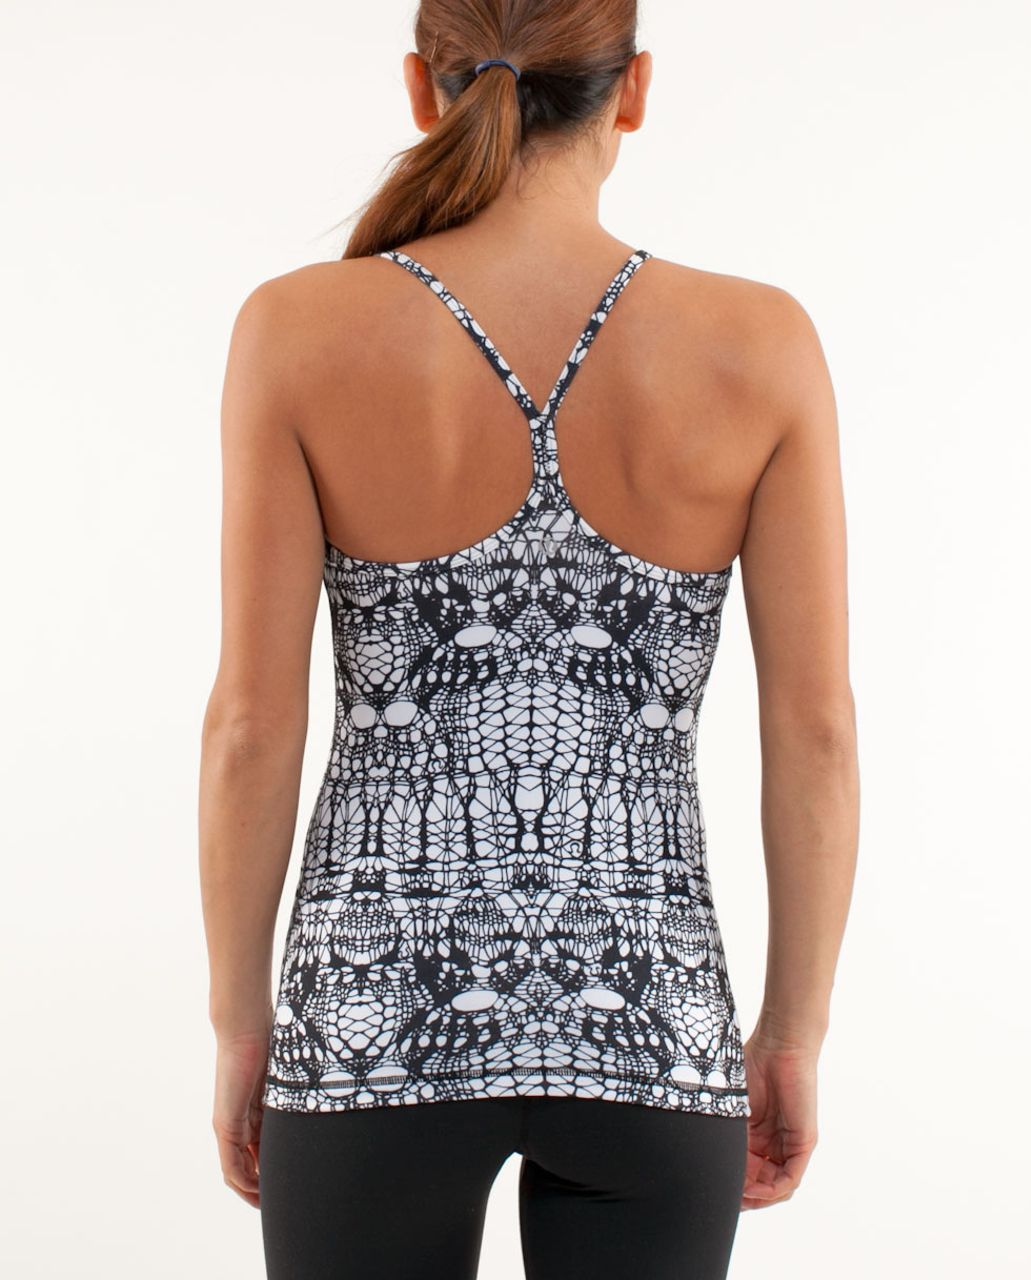 Lululemon Power Y Tank - White Black Glacier Lace